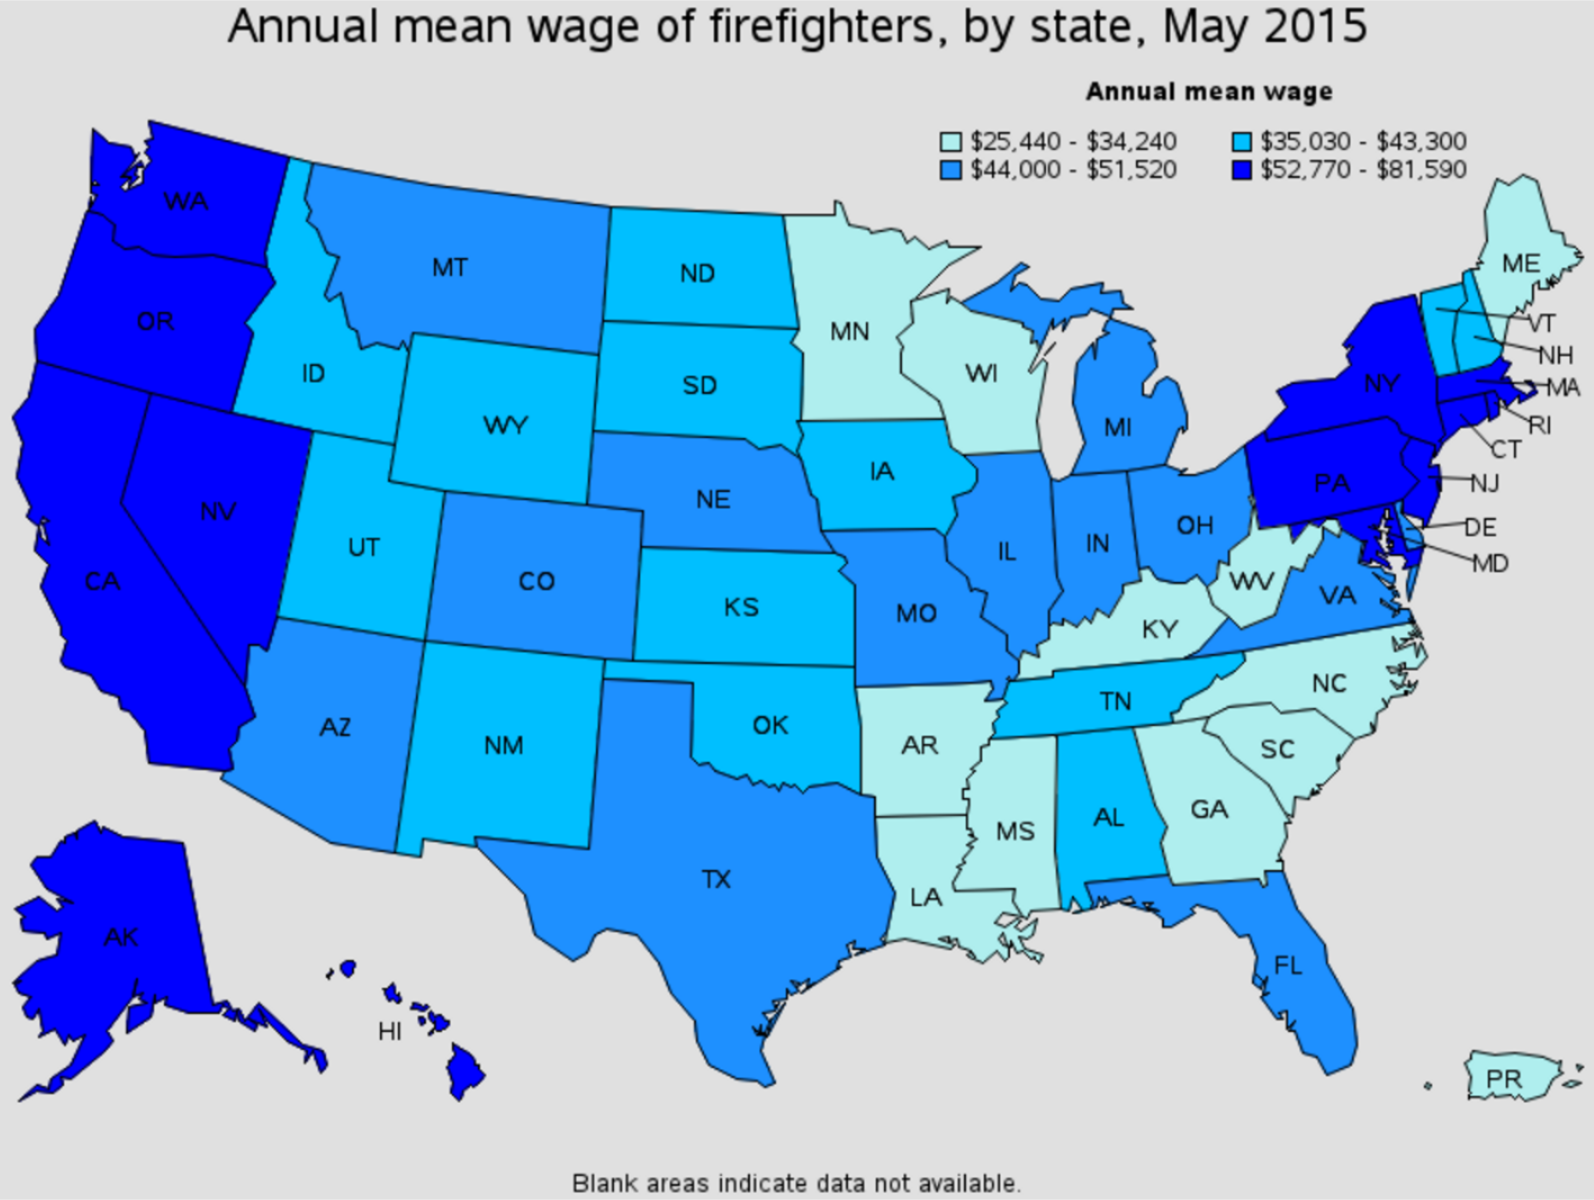 firefighter average salary by state Conyers Georgia